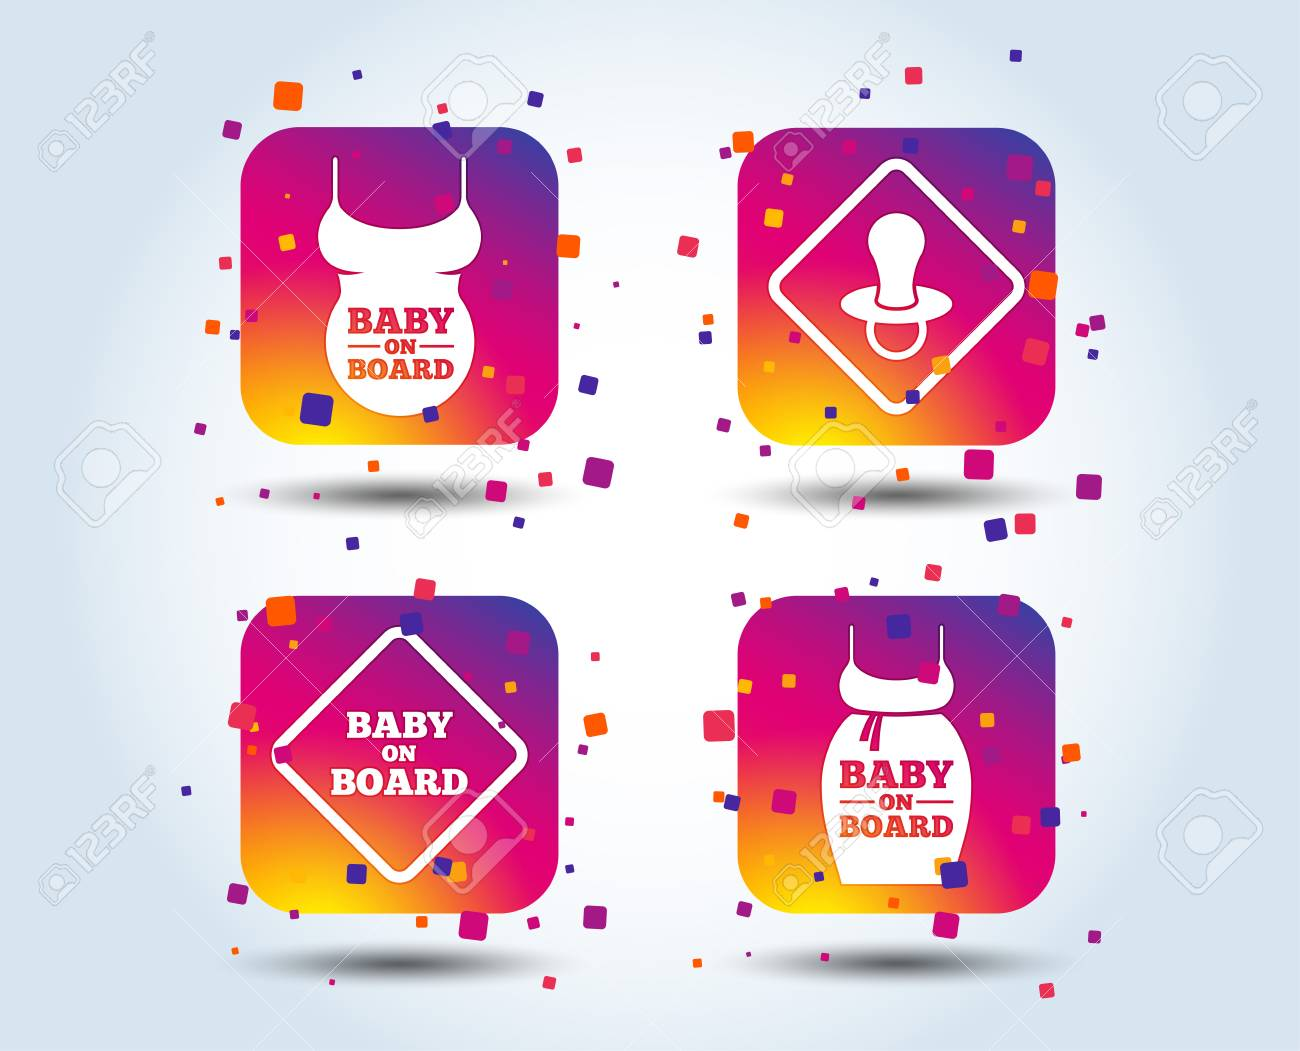 hight resolution of baby on board icons infant caution signs child pacifier nipple pregnant woman dress